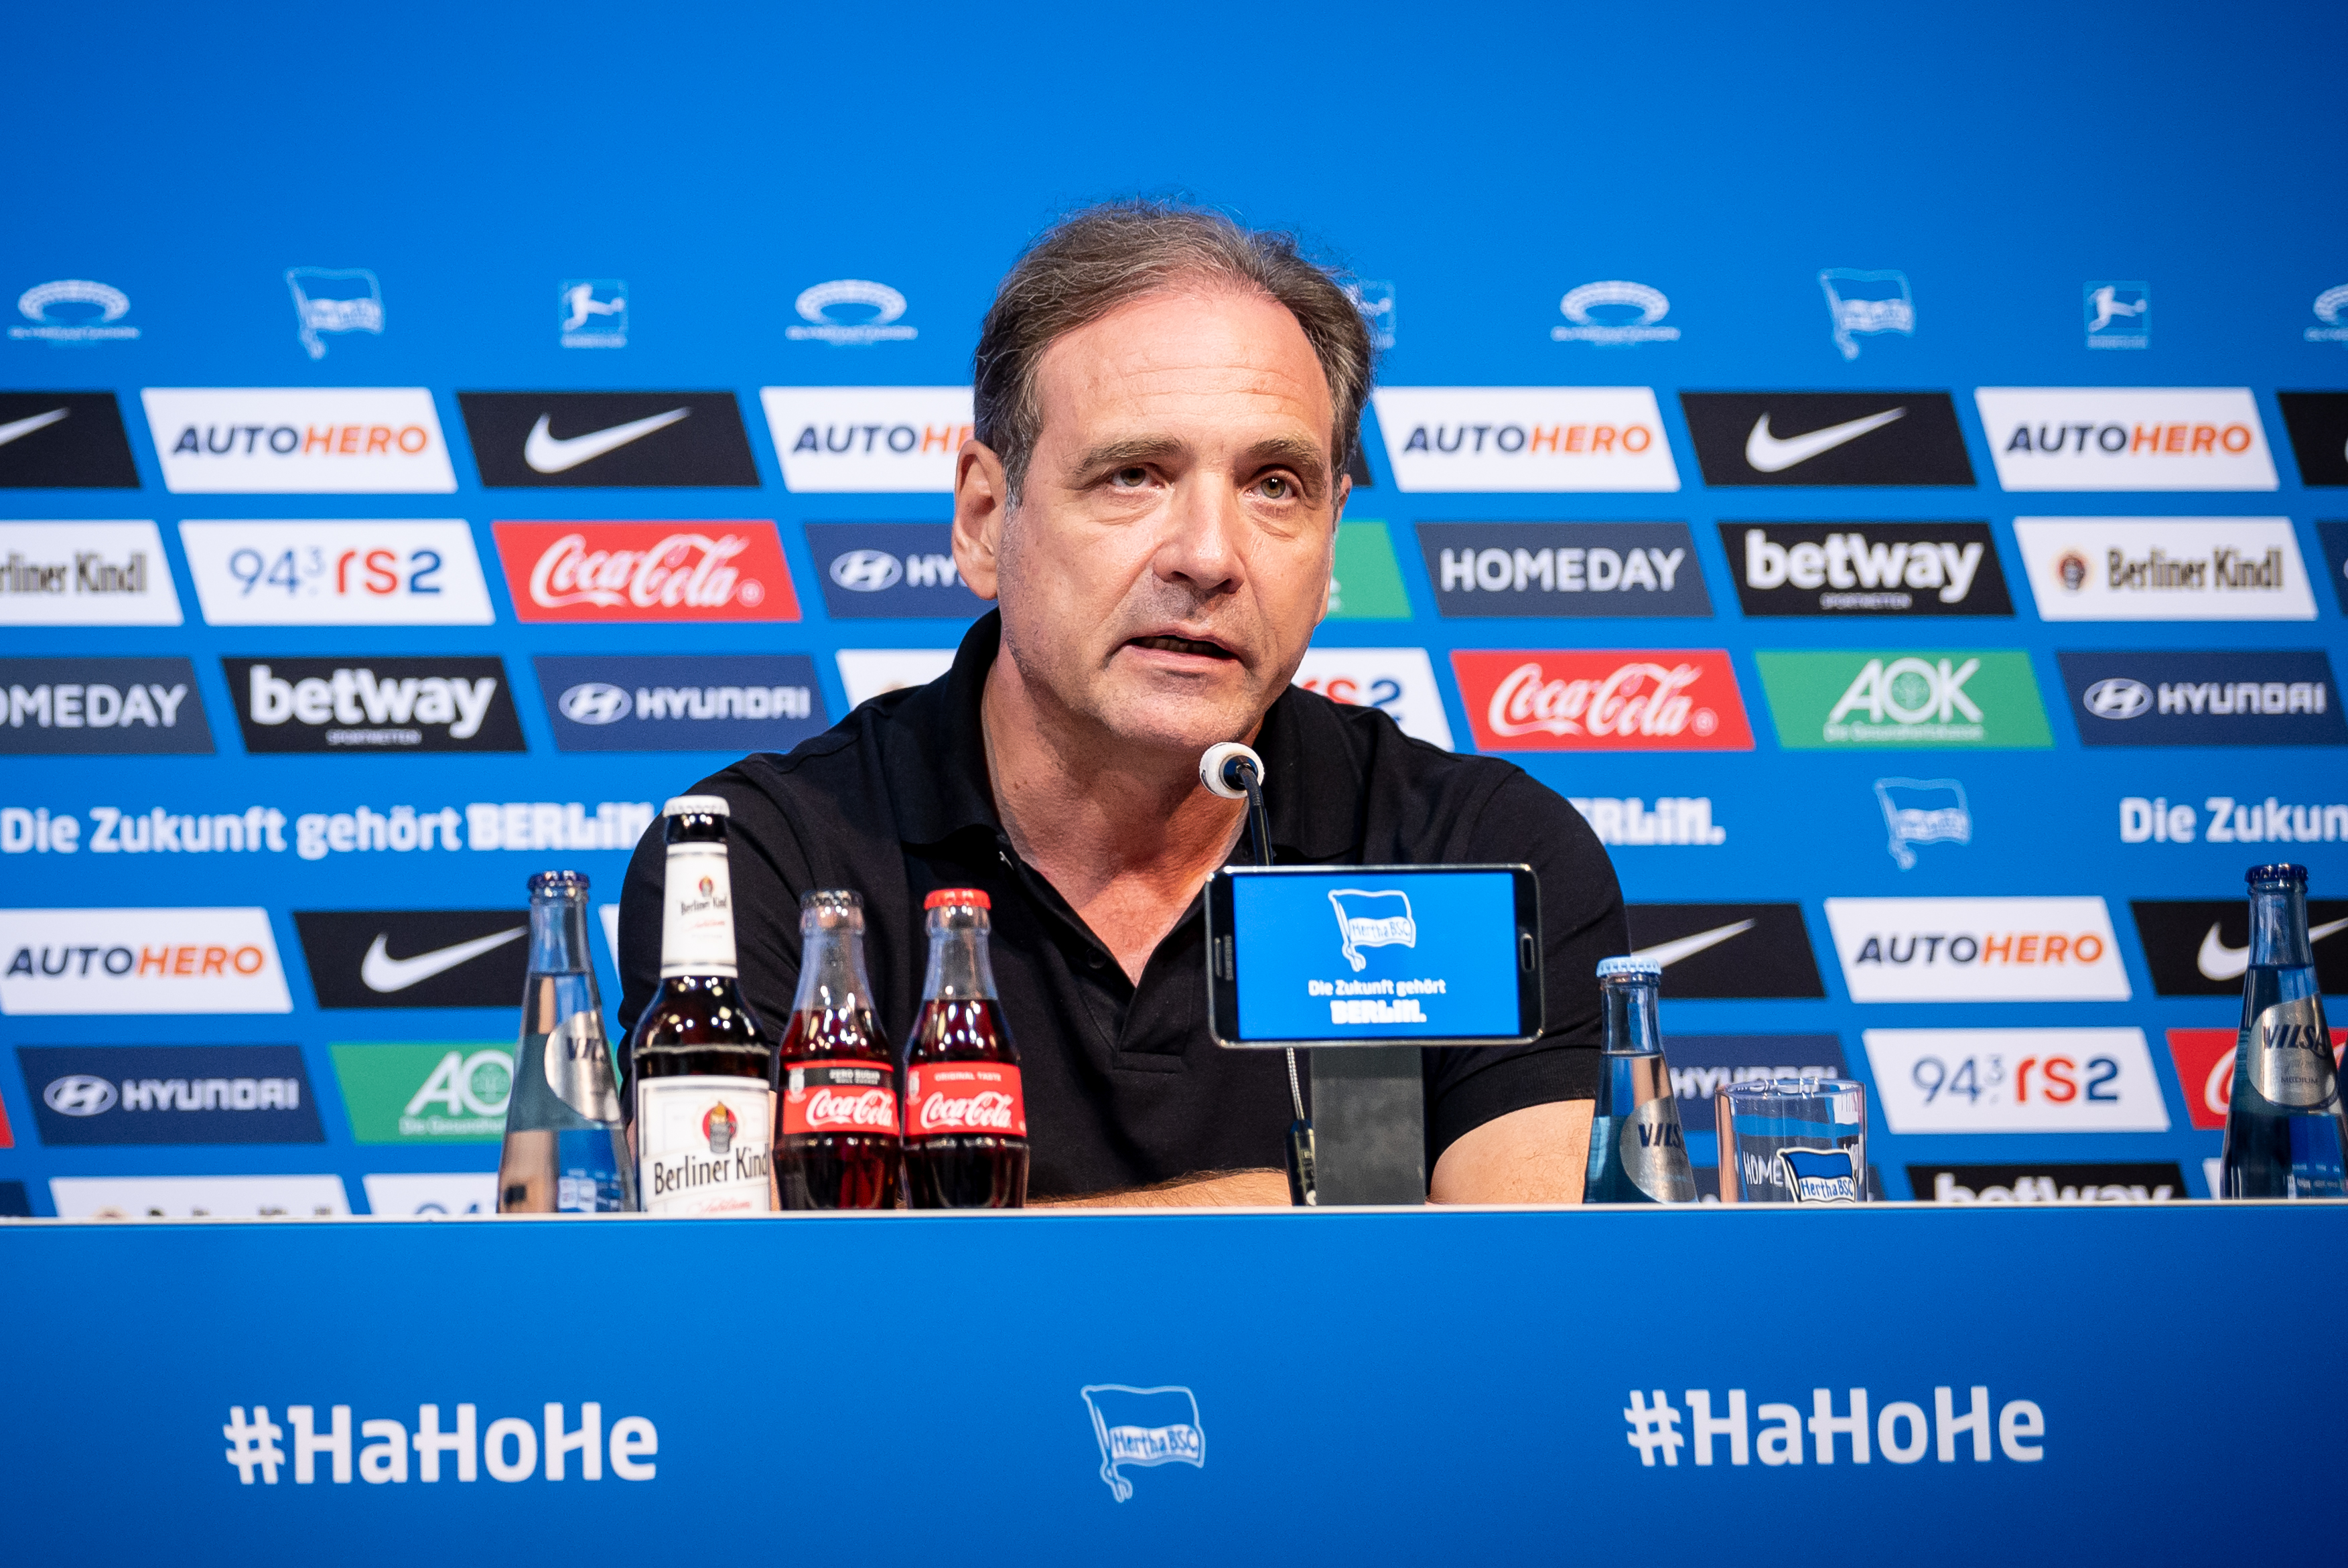 Carsten Schmidt at the press conference.